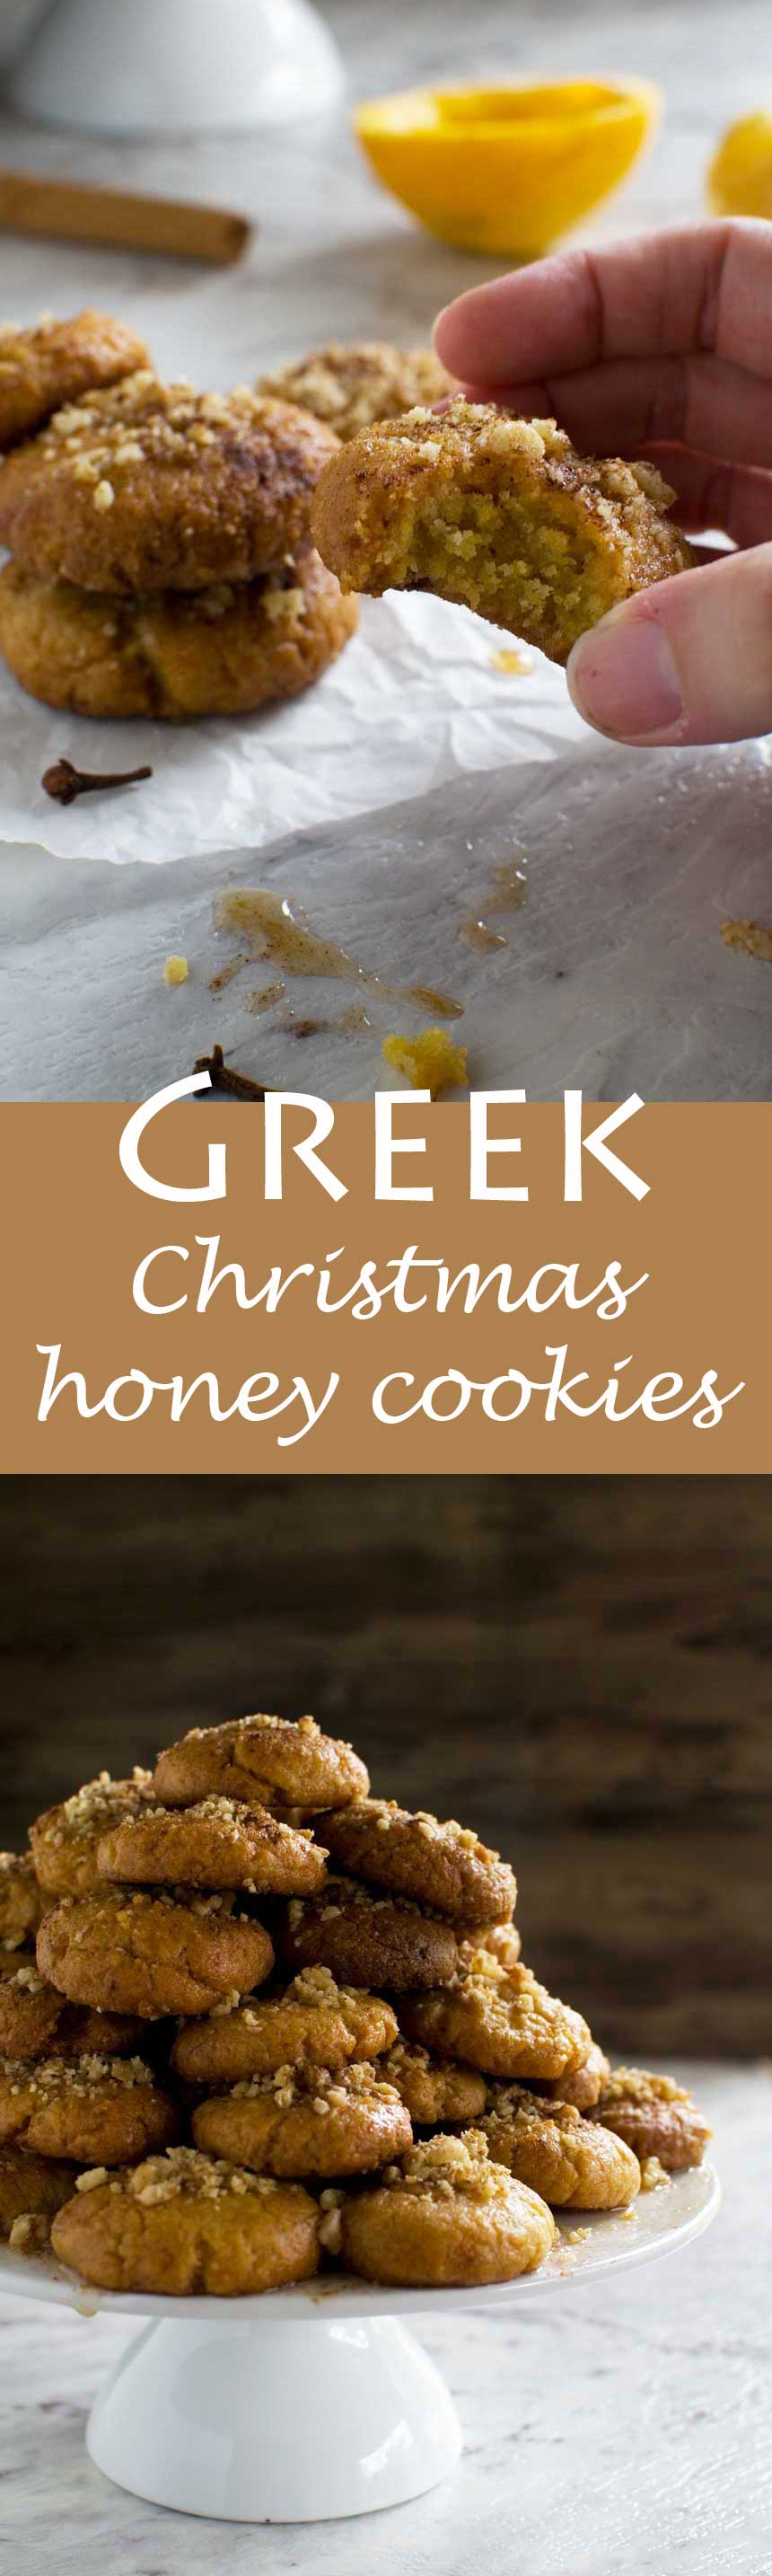 Greek Christmas honey cookies - seriously addictive!